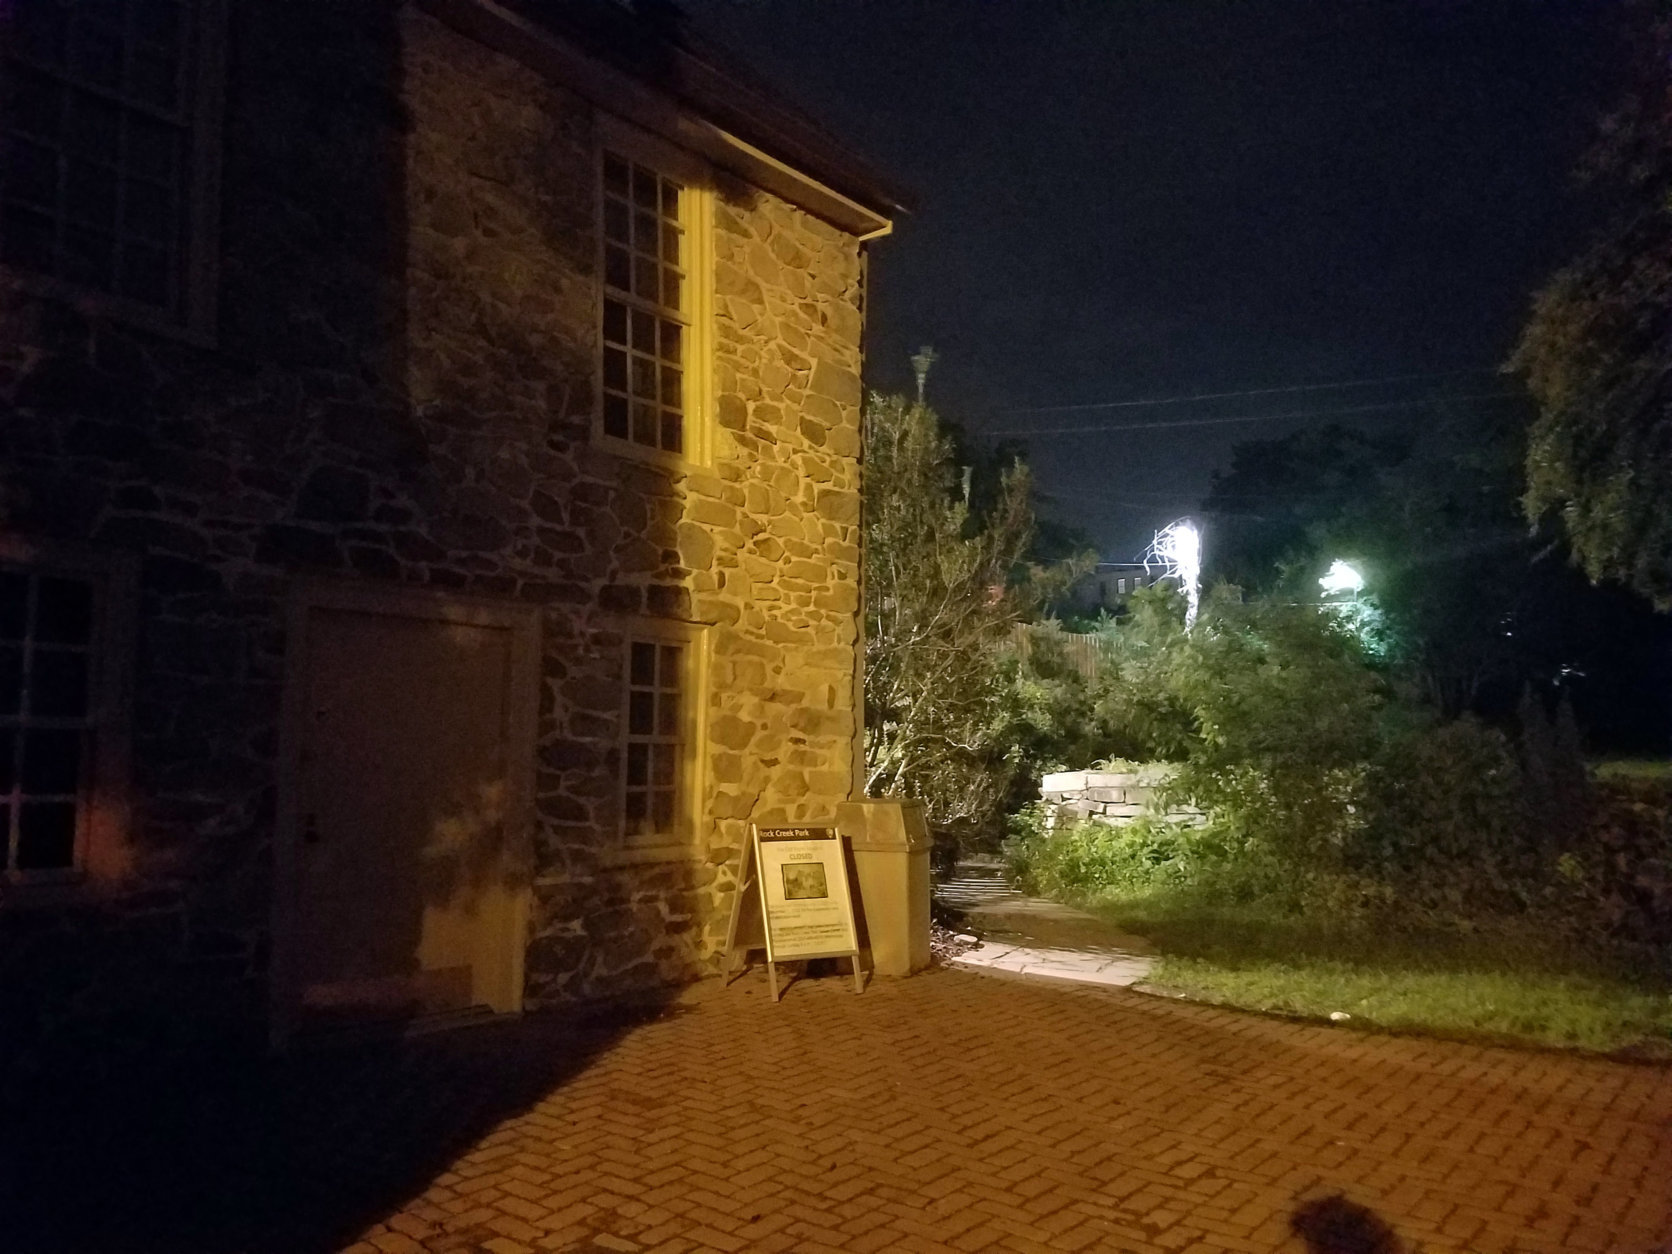 The Old Stone House has a garden area. (WTOP/Will Vitka)